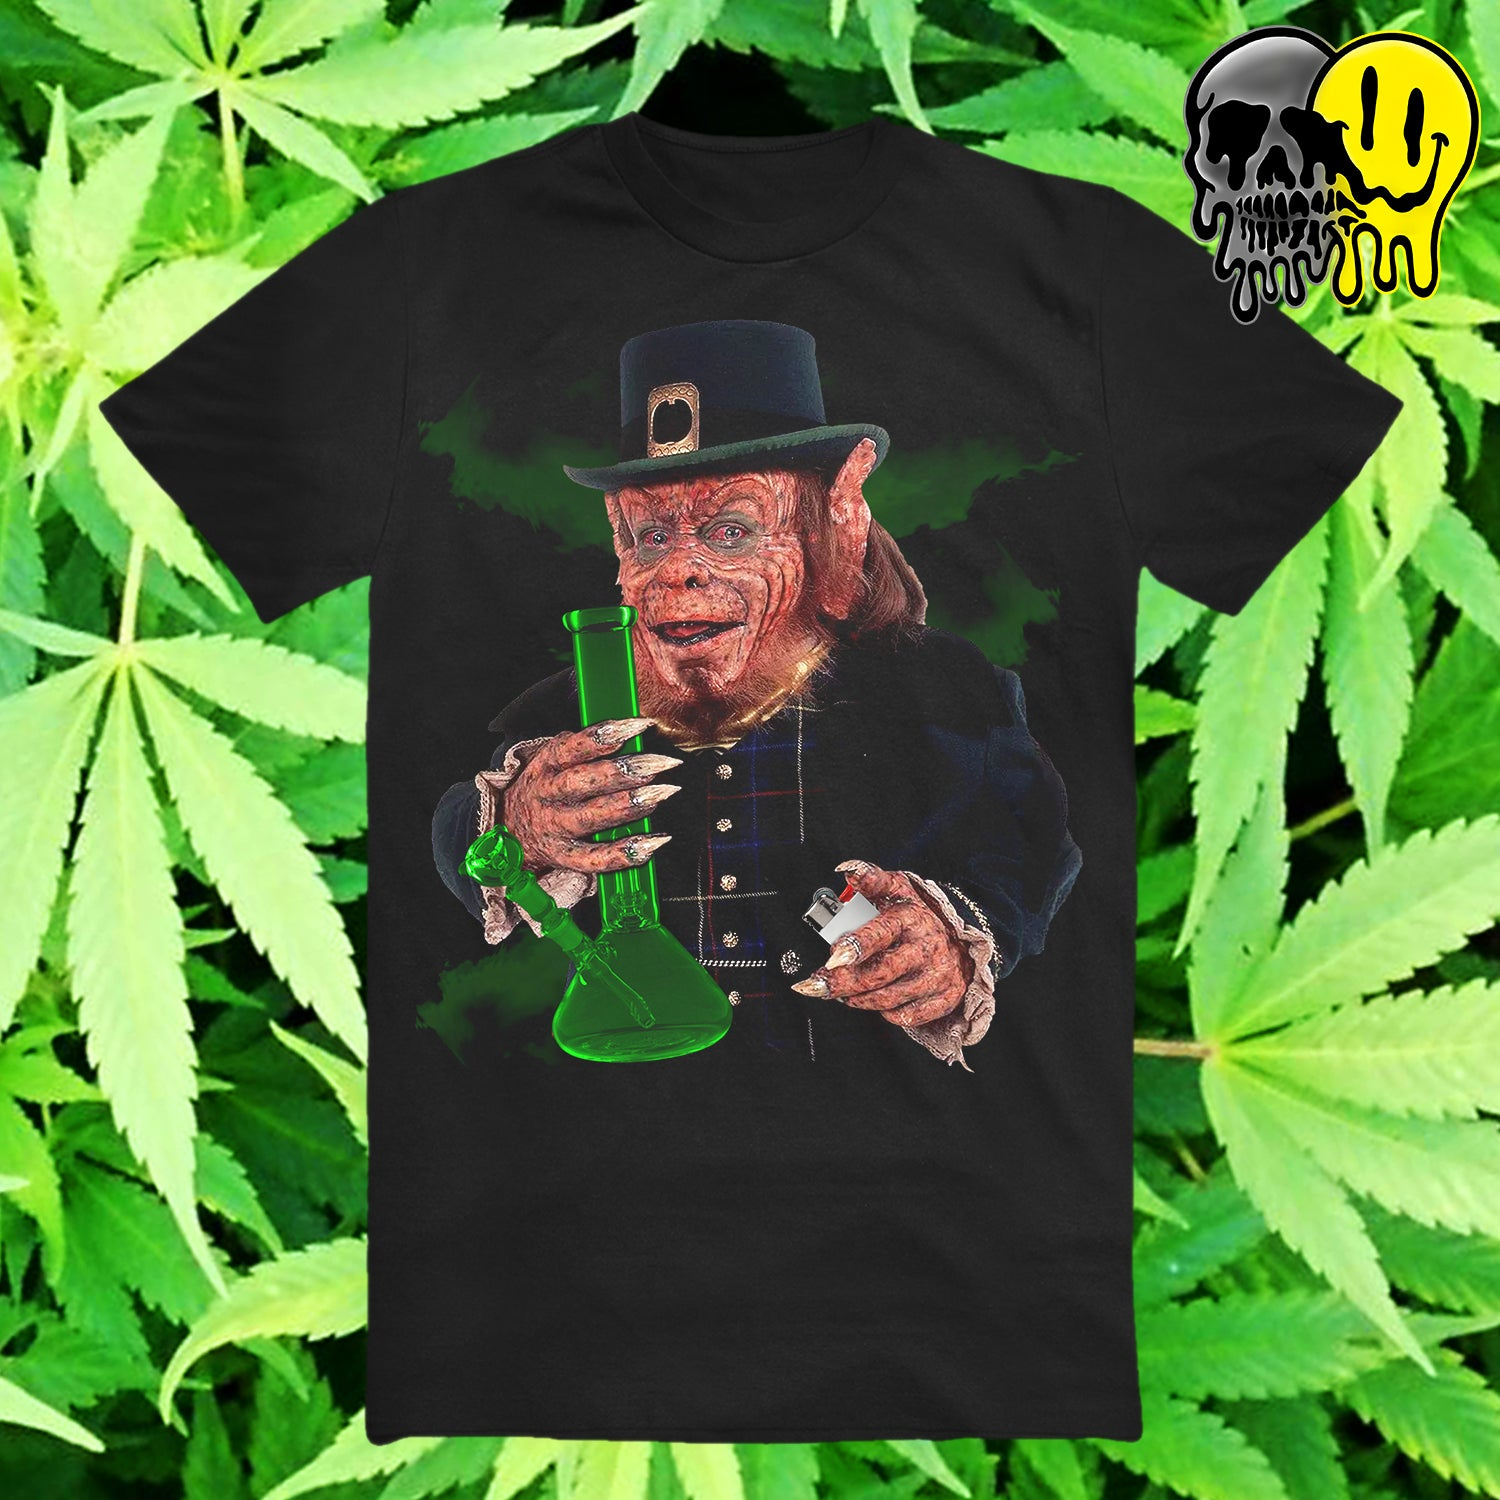 The Leprebong - Men's Tee